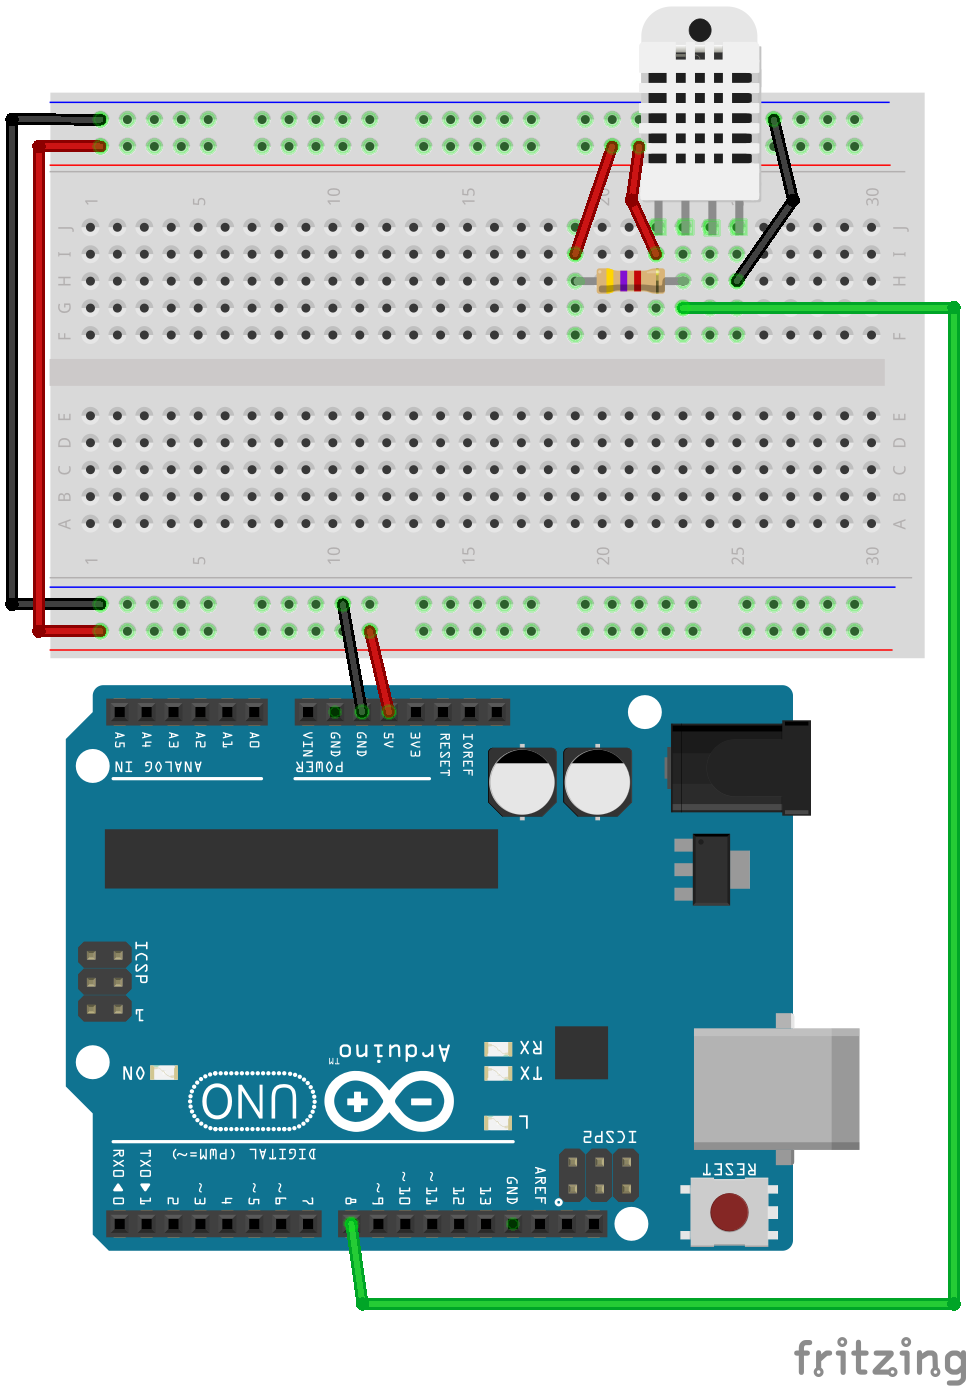 Connexion Dht11 22 Arduino Pinterest Color Sensing Tutorial Tsc230 Tsc3200 Sensor Circuit